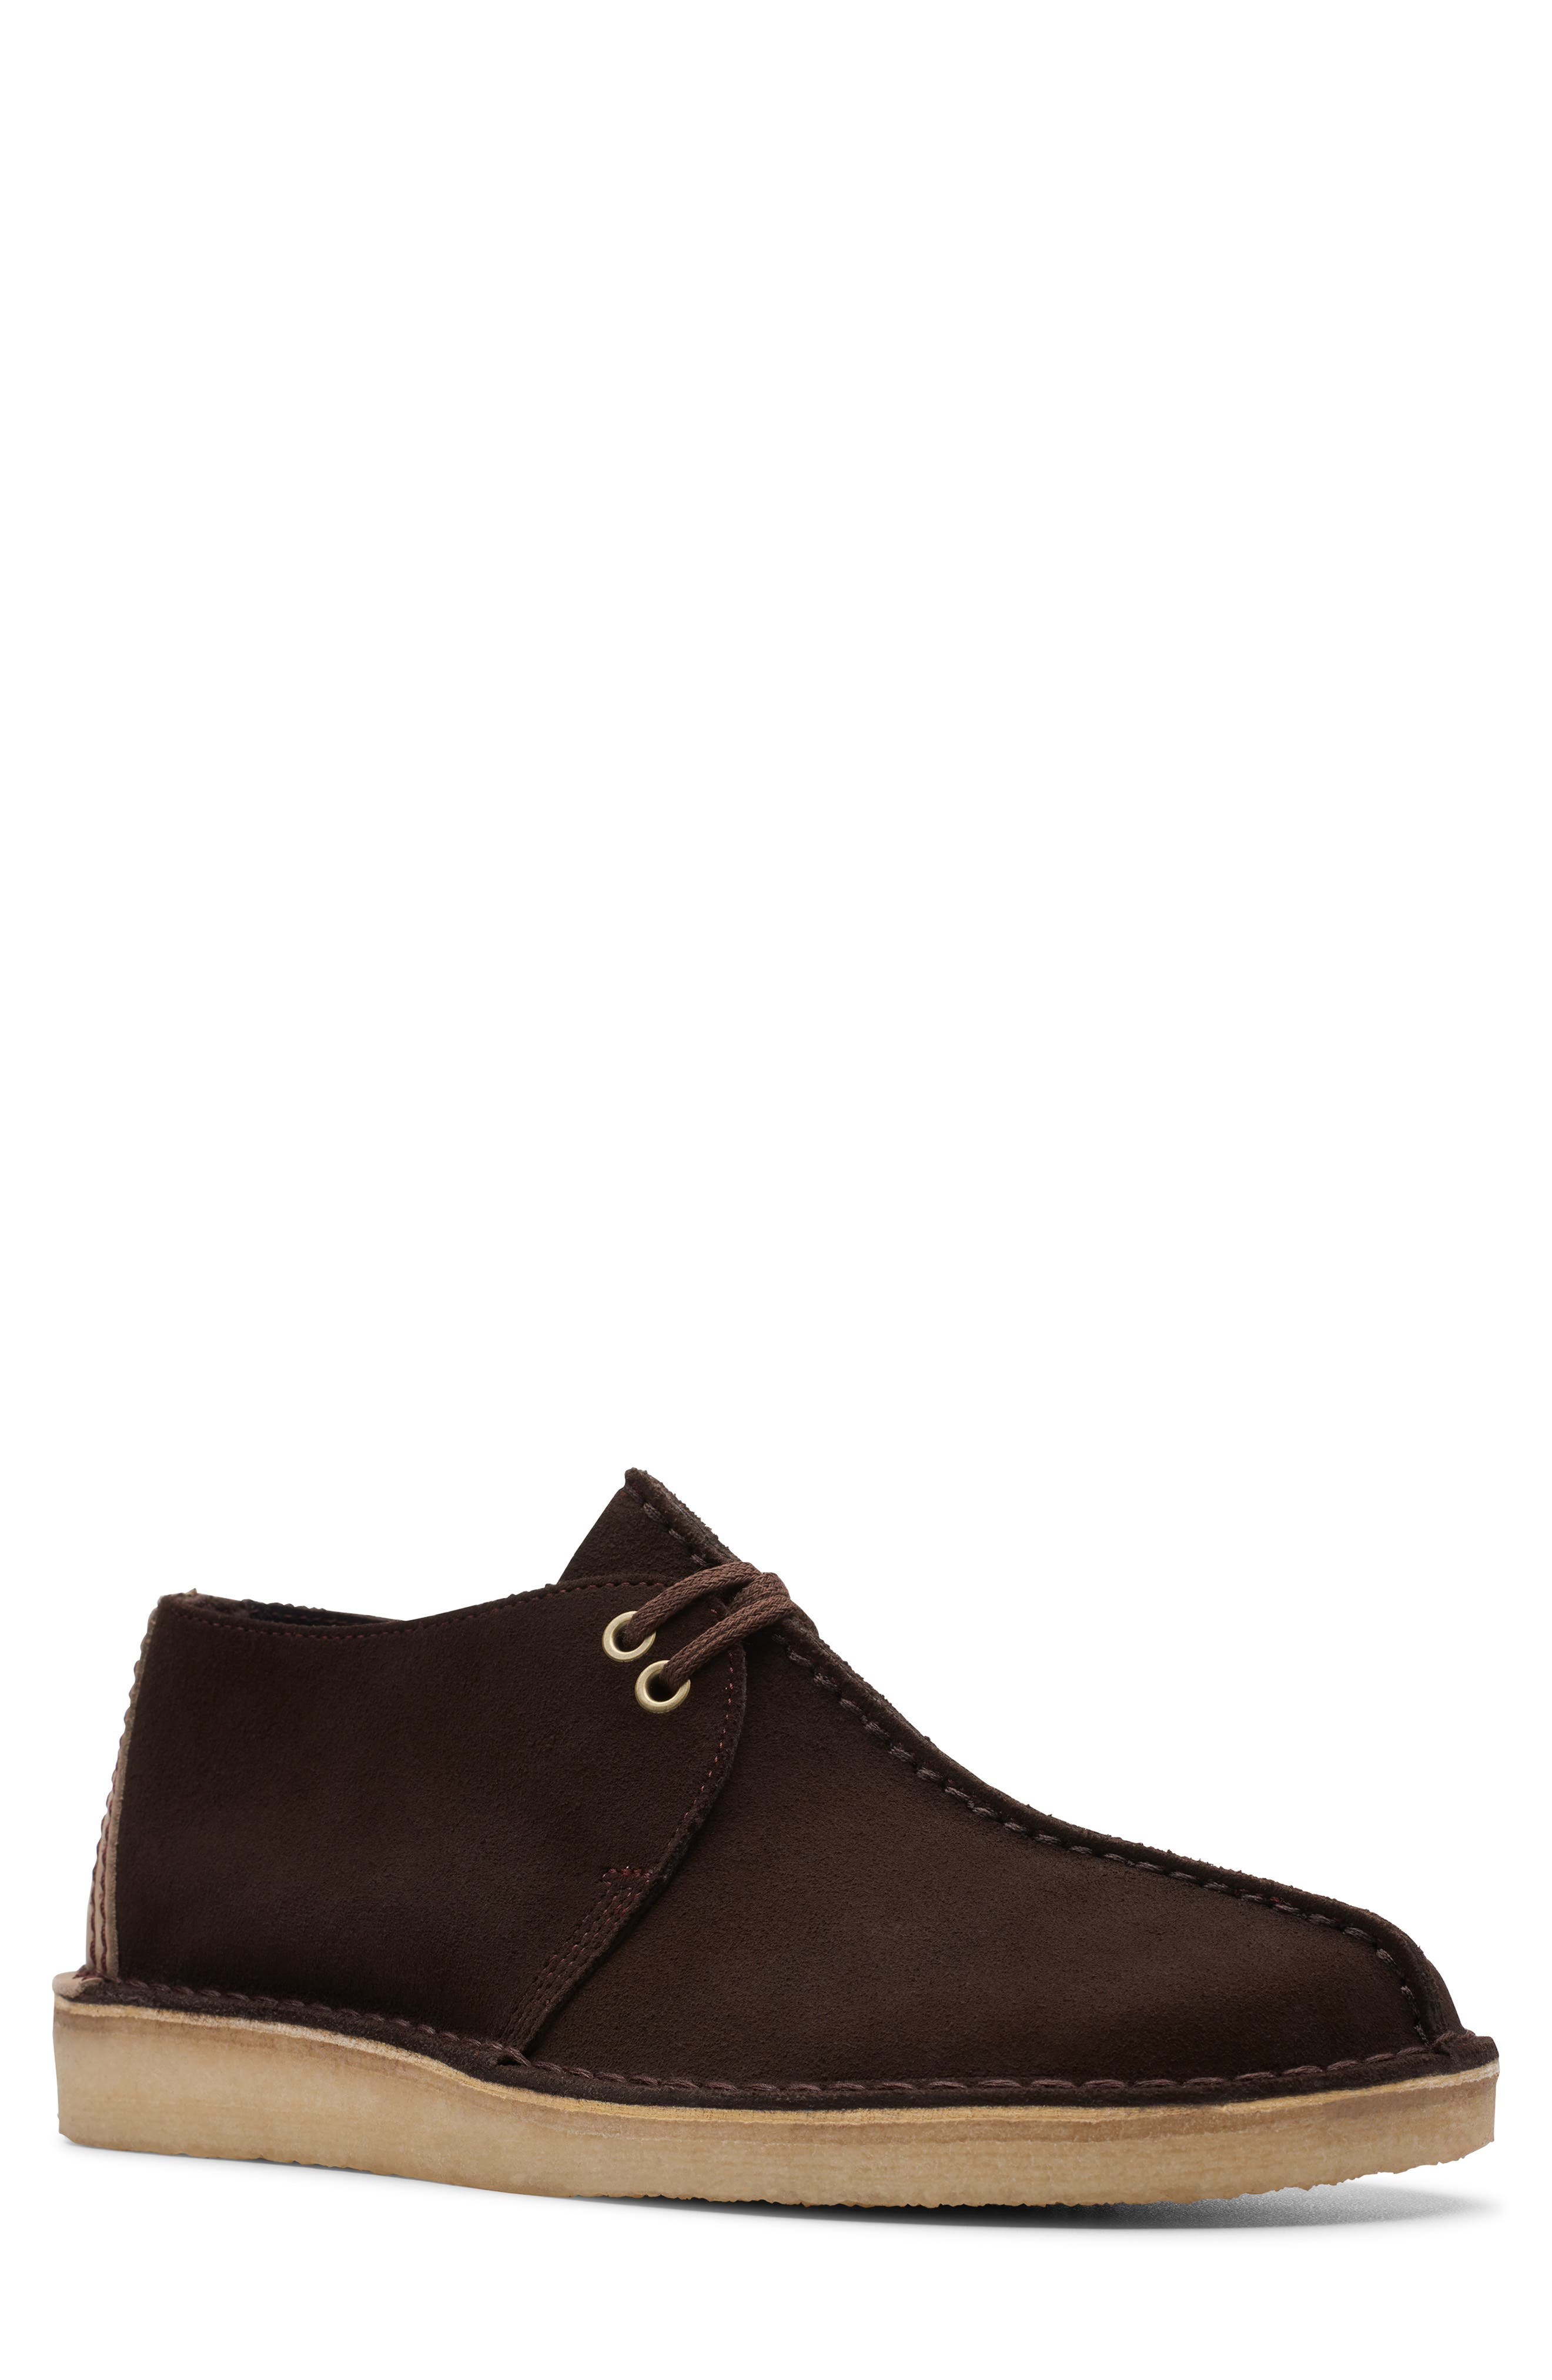 CLARKS<SUP>®</SUP> Desert Trek Chukka Boot, Main, color, DARK BROWN SUEDE